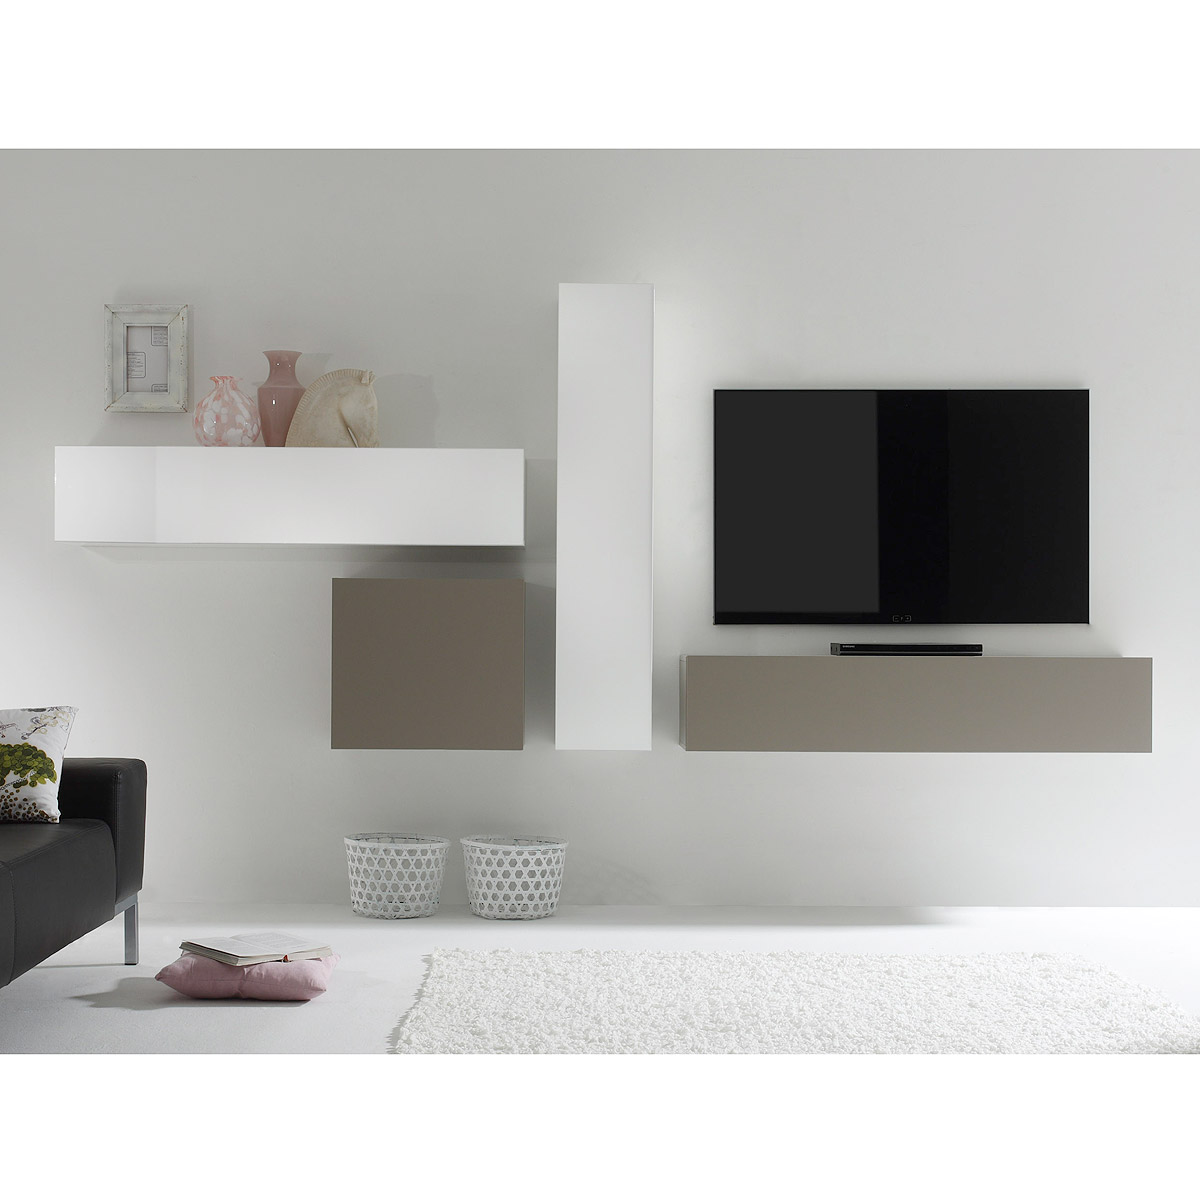 wohnwand cube kombi 4 anbauwand wei lack und beige matt eur 377 95 picclick de. Black Bedroom Furniture Sets. Home Design Ideas